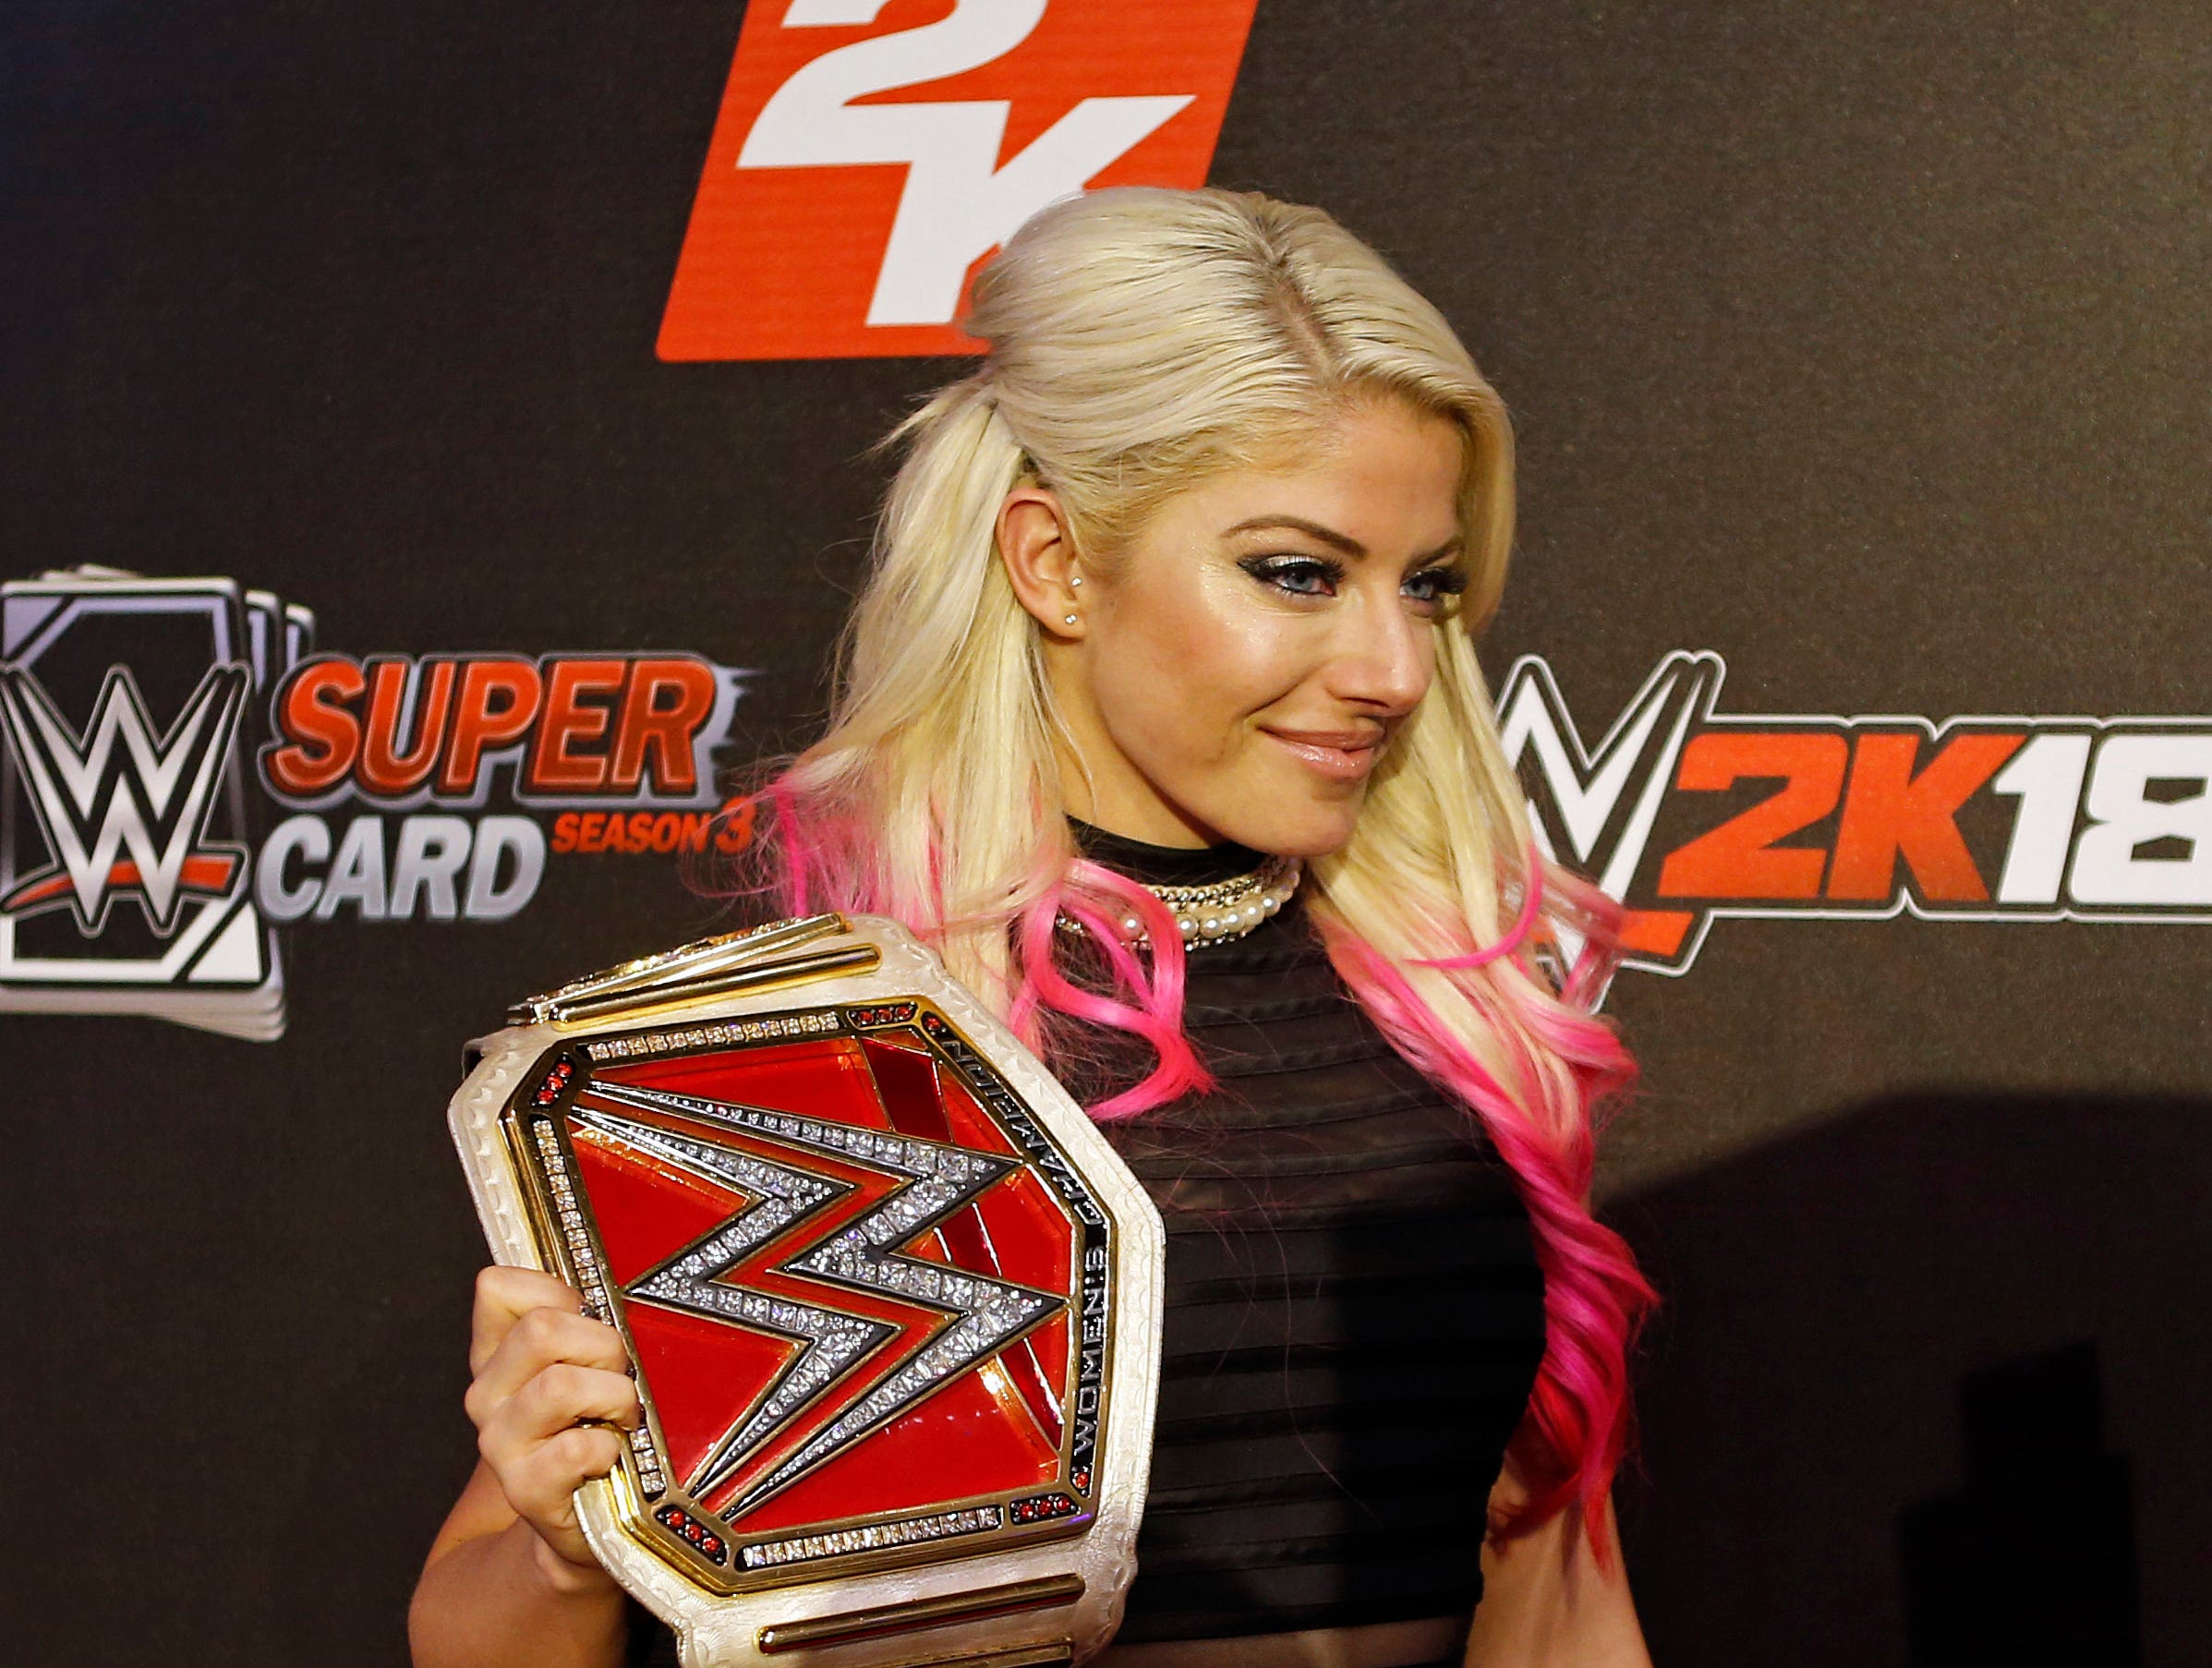 Piledriver: WWE's women's roster takes center stage at 'Evolution'